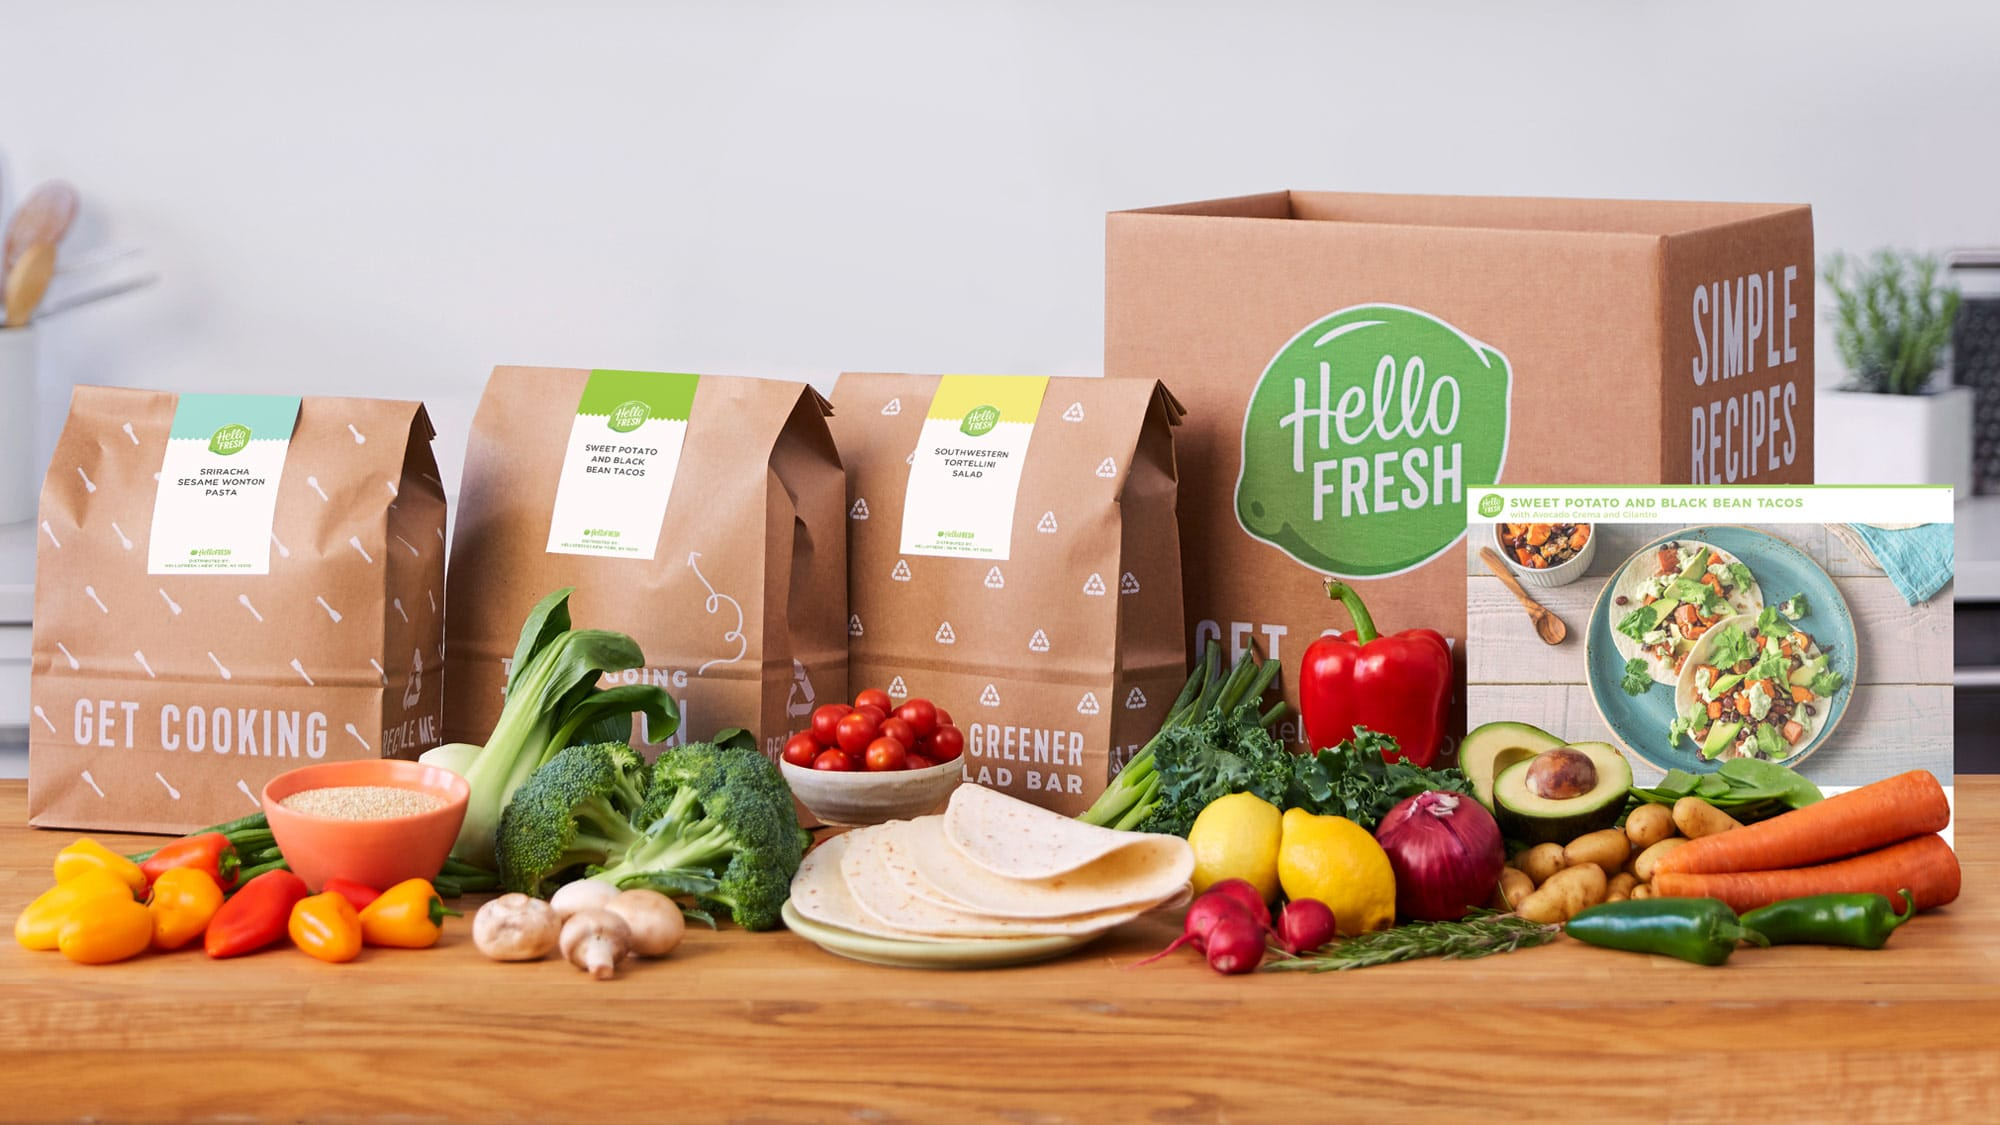 hellofresh referral code hello fresh refer a friend code